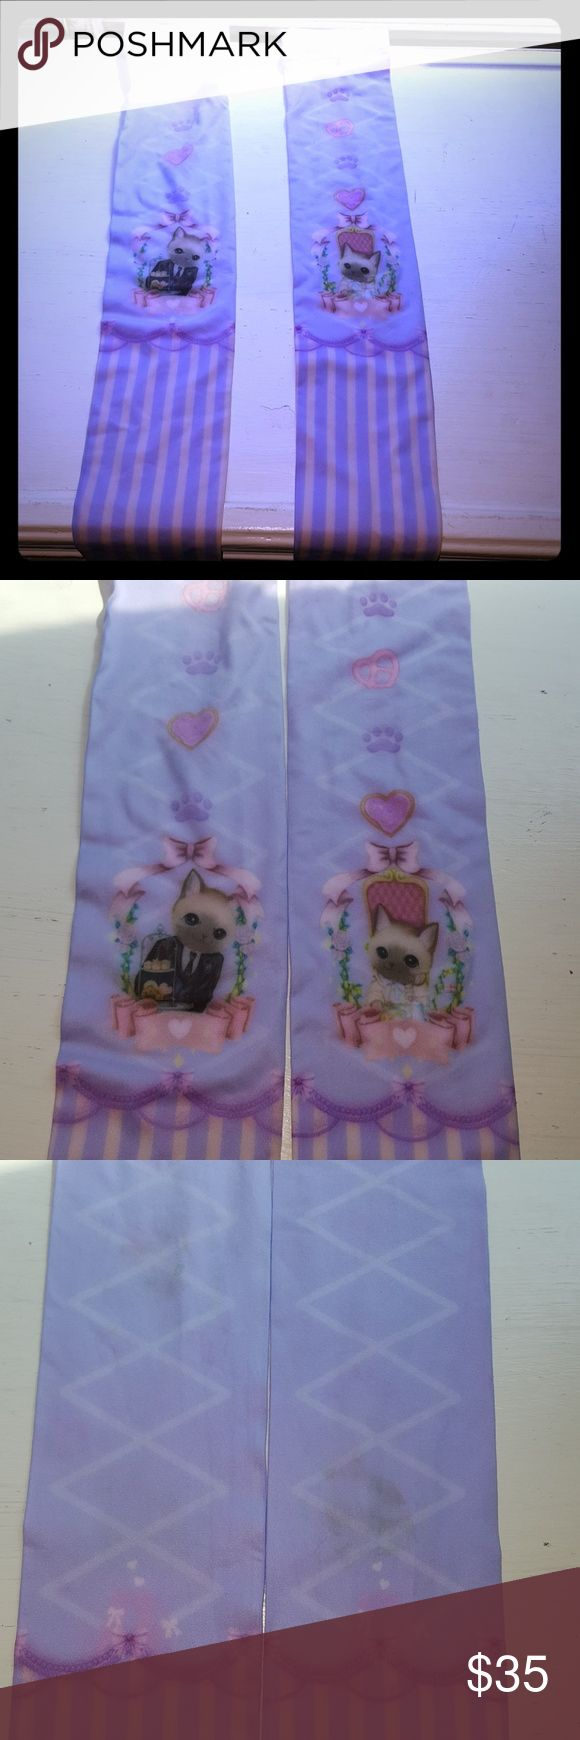 Kitty thigh highs Super kawaii lolita cats with heart pretzels and paw prints just noticed some stains very melanie martinez tags doll house barbie cats sourpuss iron fist unif sour puss Other